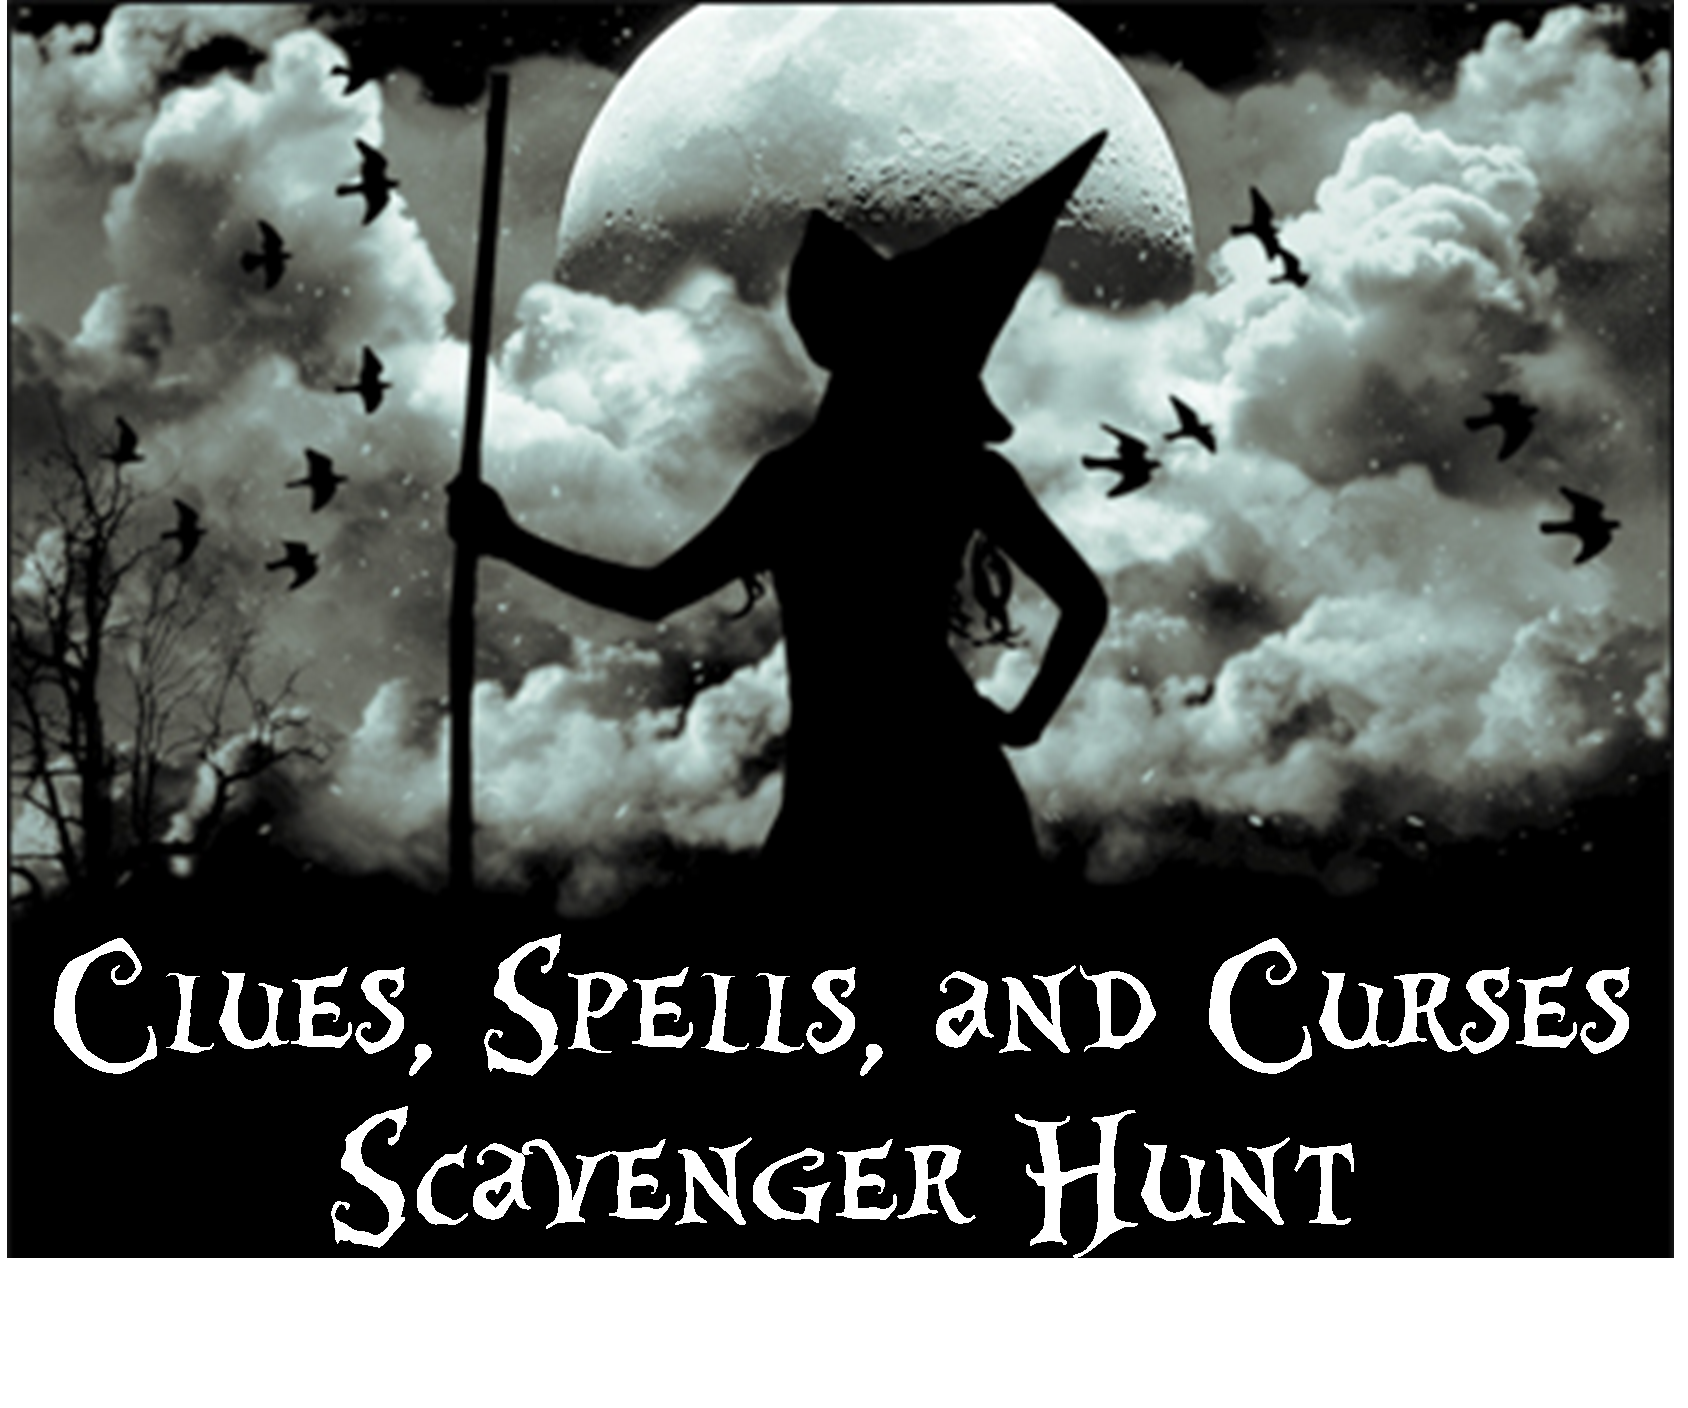 PRODUCT REVIEW: CLUES, SPELLS, AND CURSES PRINTABLE SCAVENGER HUNT ...